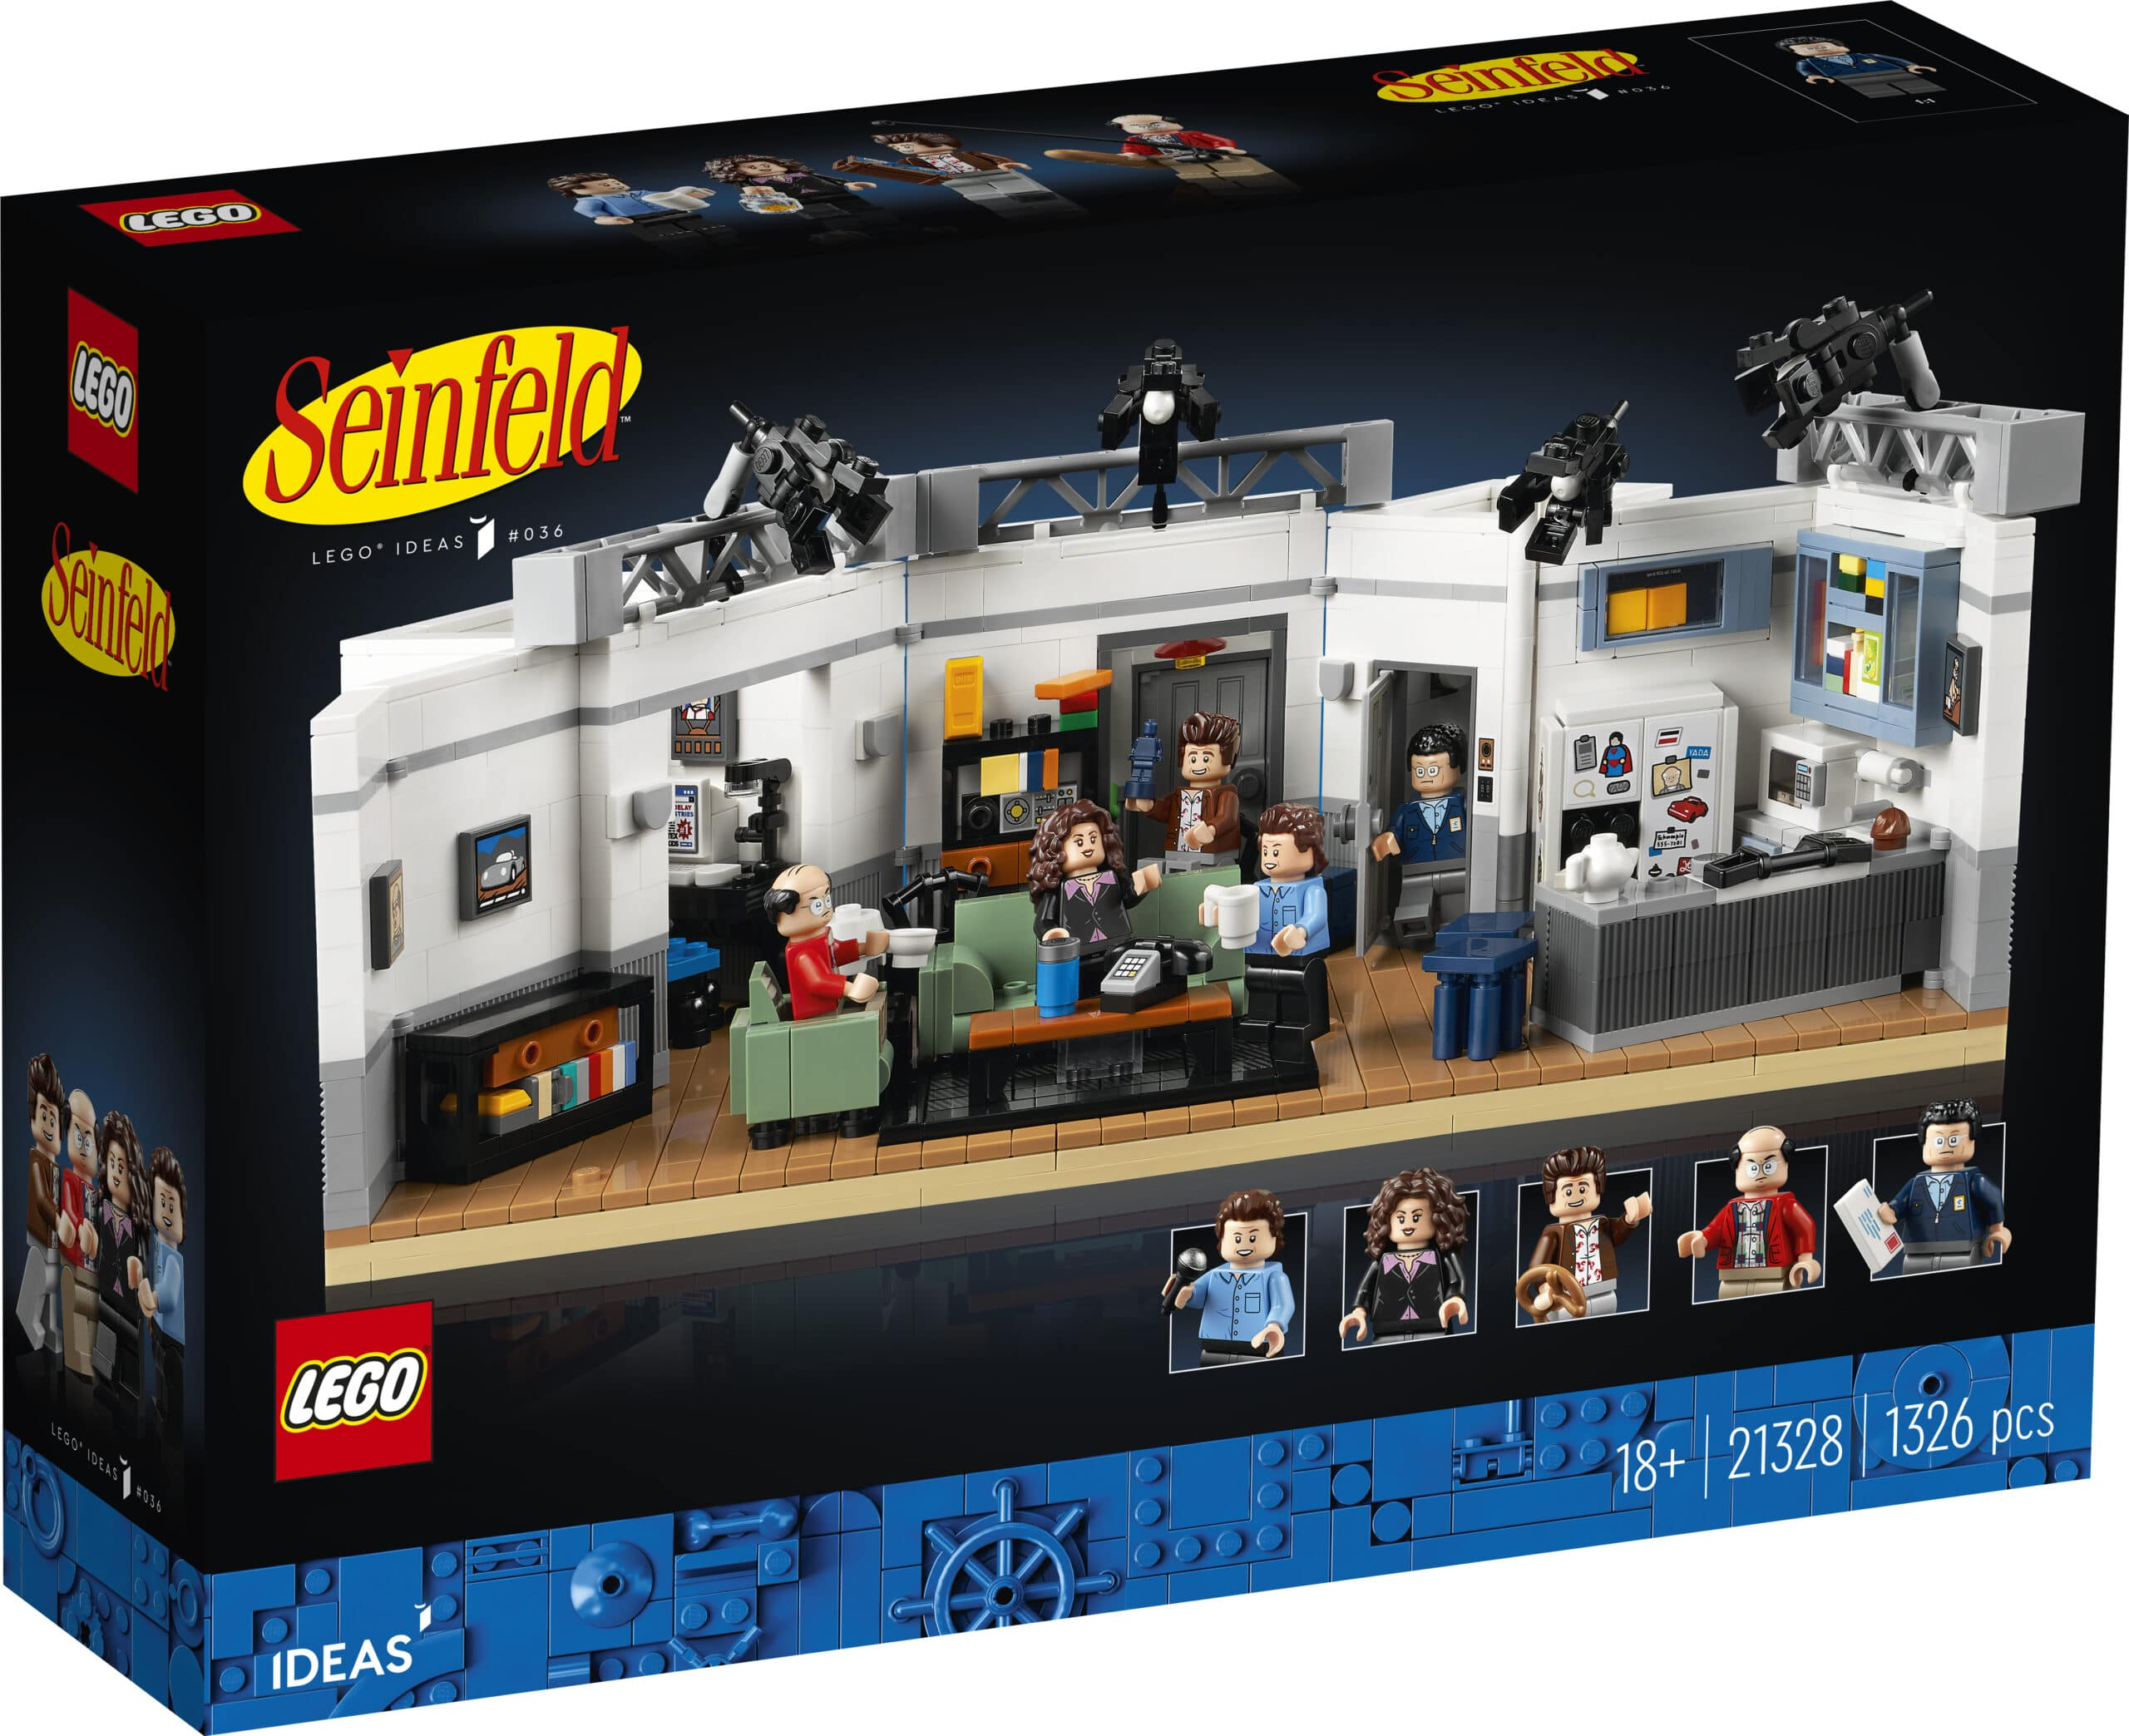 The LEGO Ideas Seinfeld set will transport fans back to '90s New York City 21